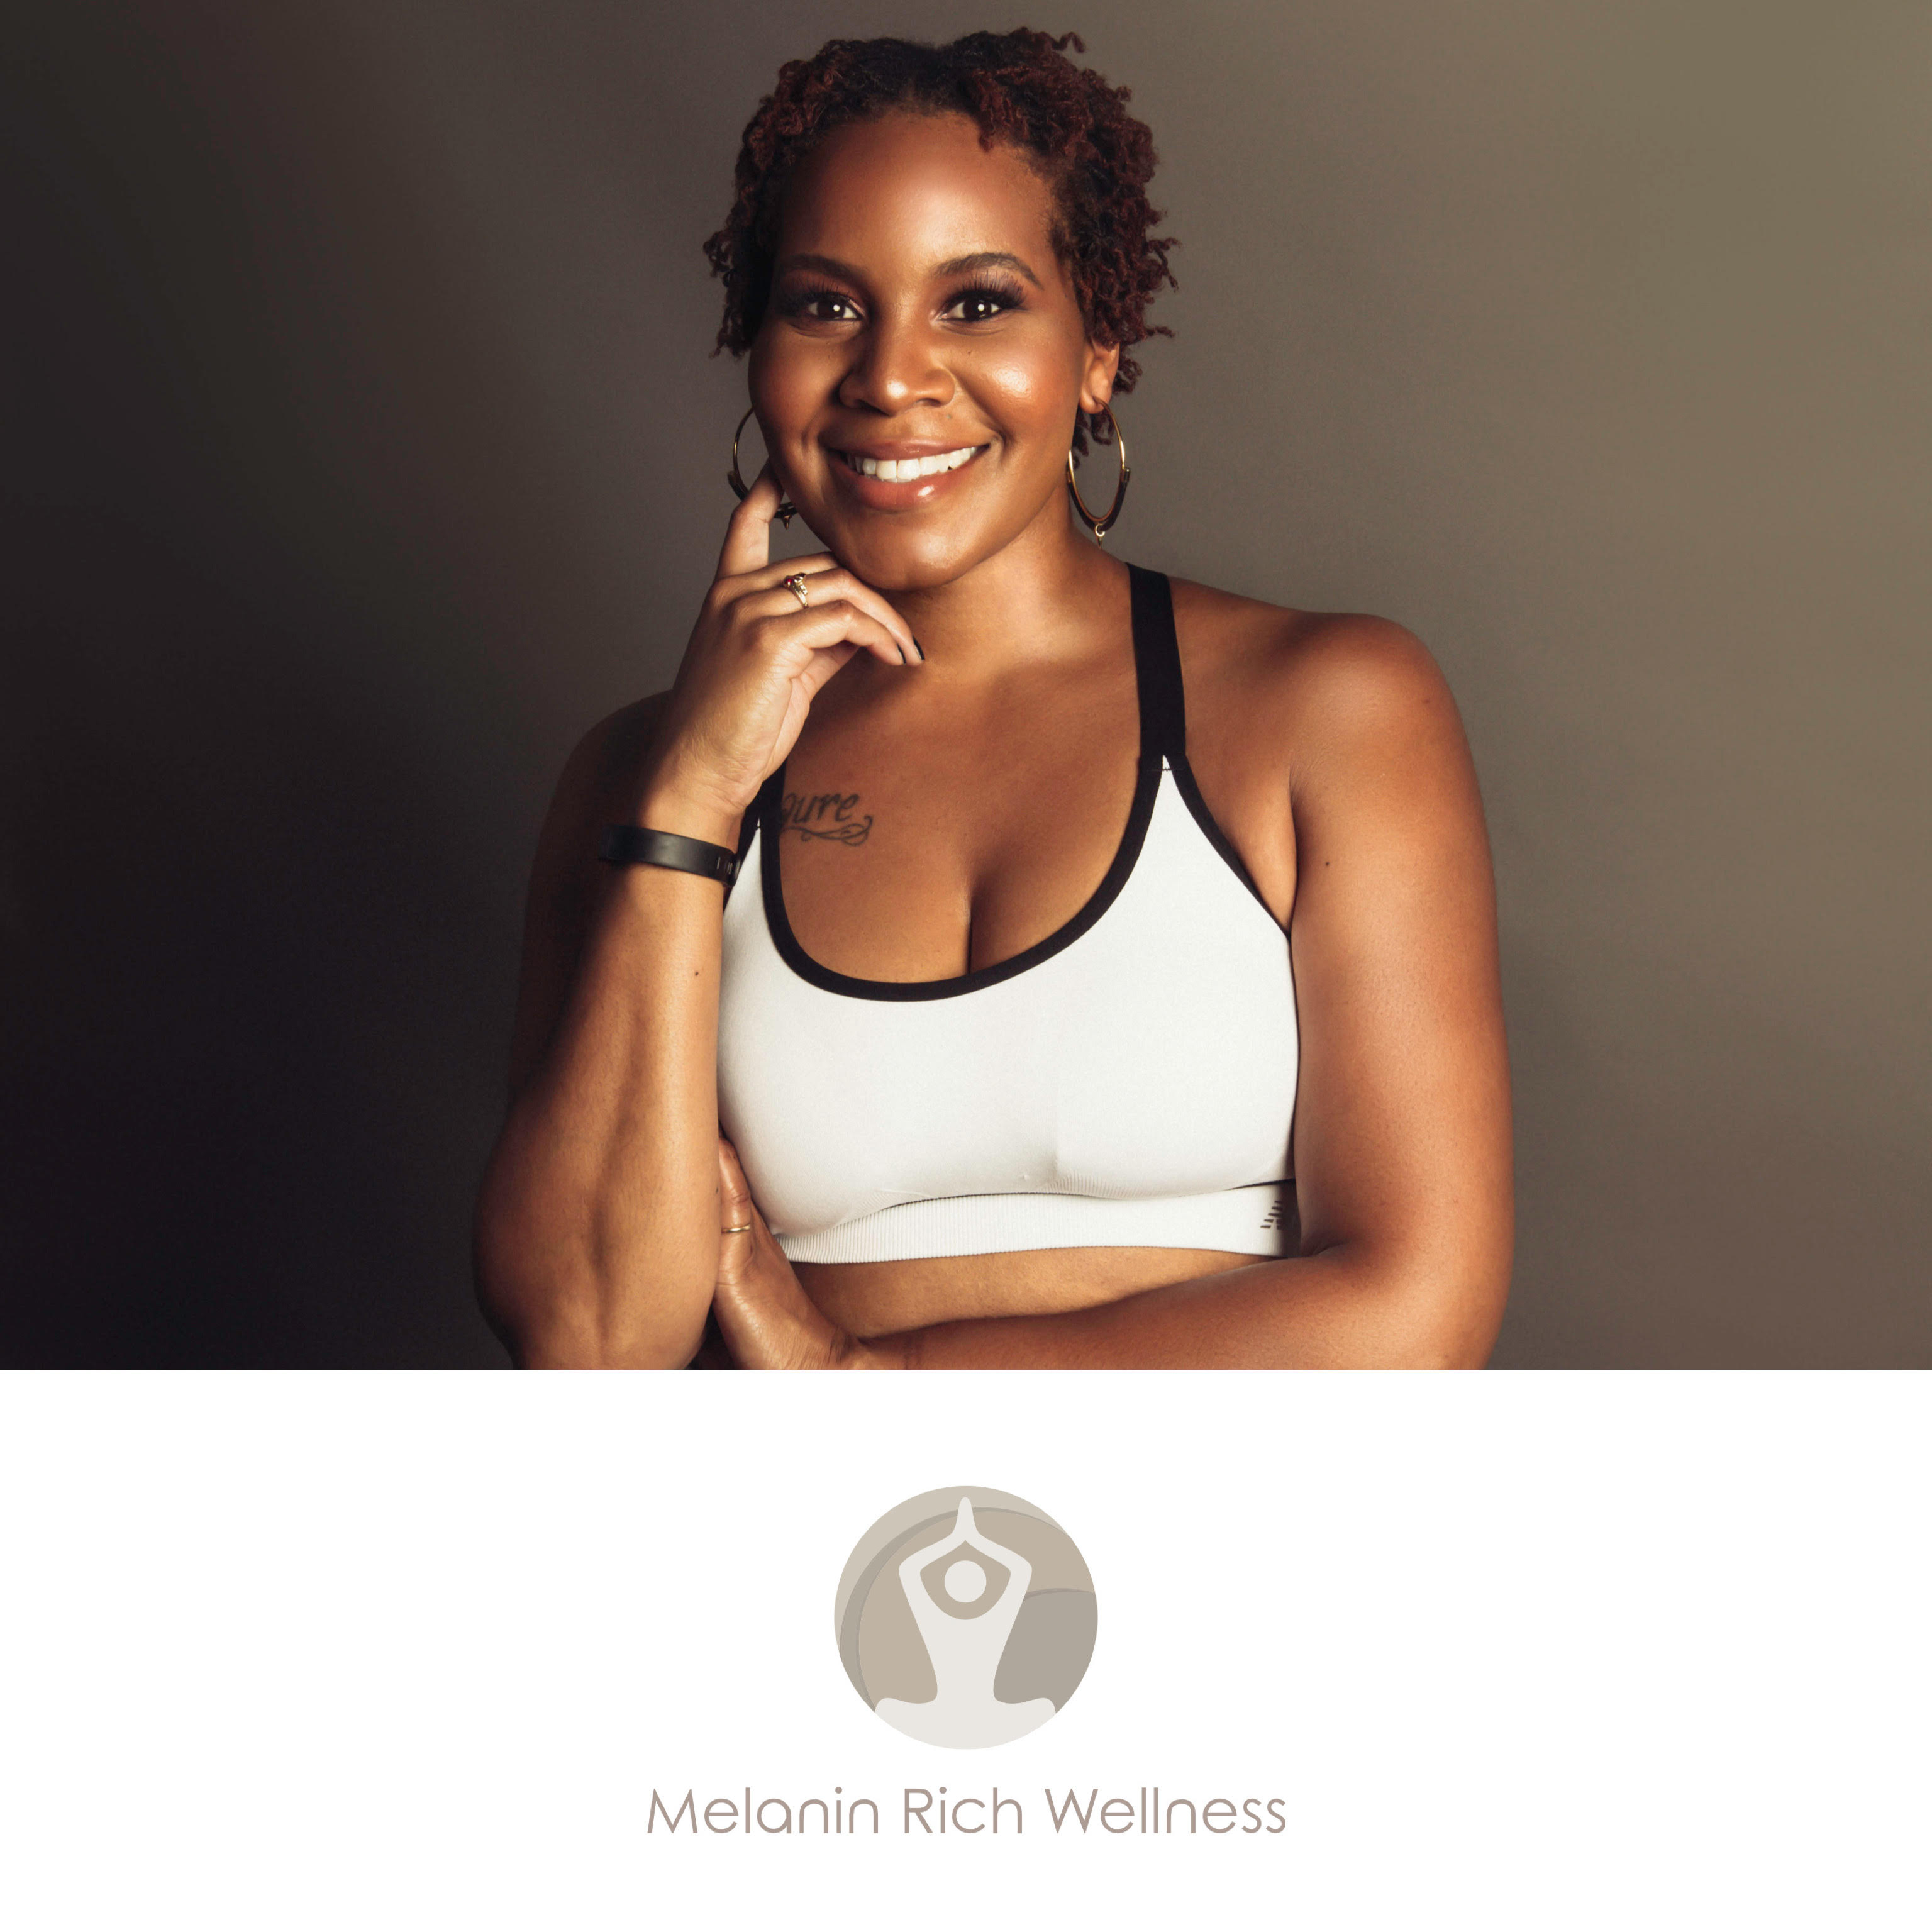 Melanin Rich Wellness